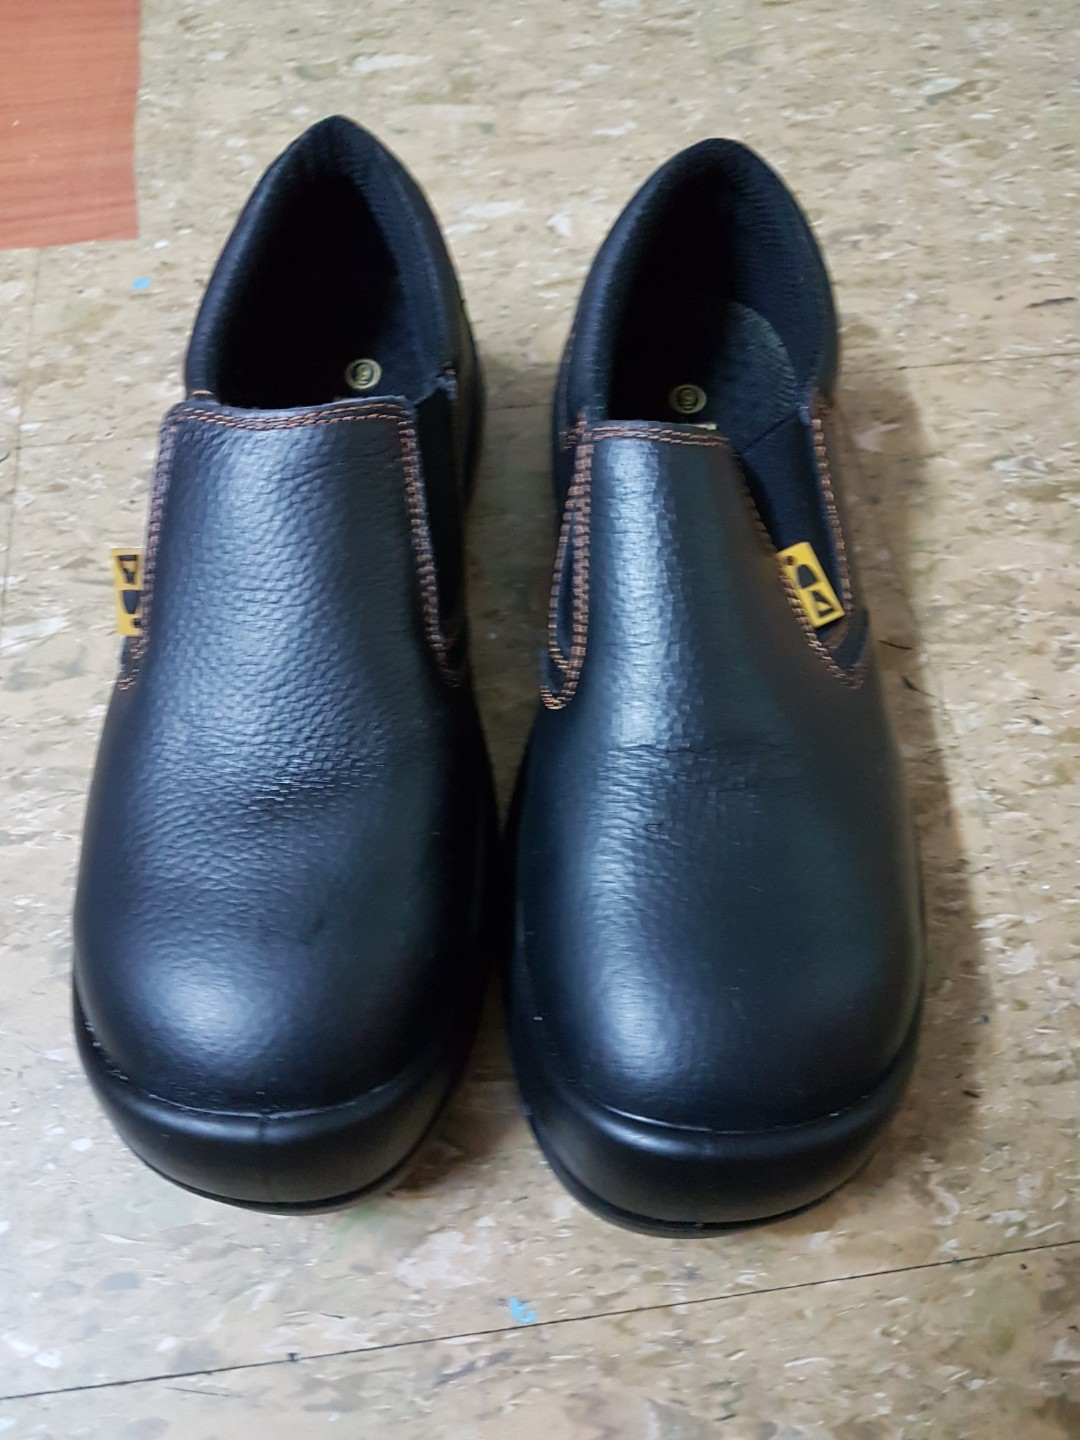 Kitchen safety shoe (Chef Shoe) on Carousell